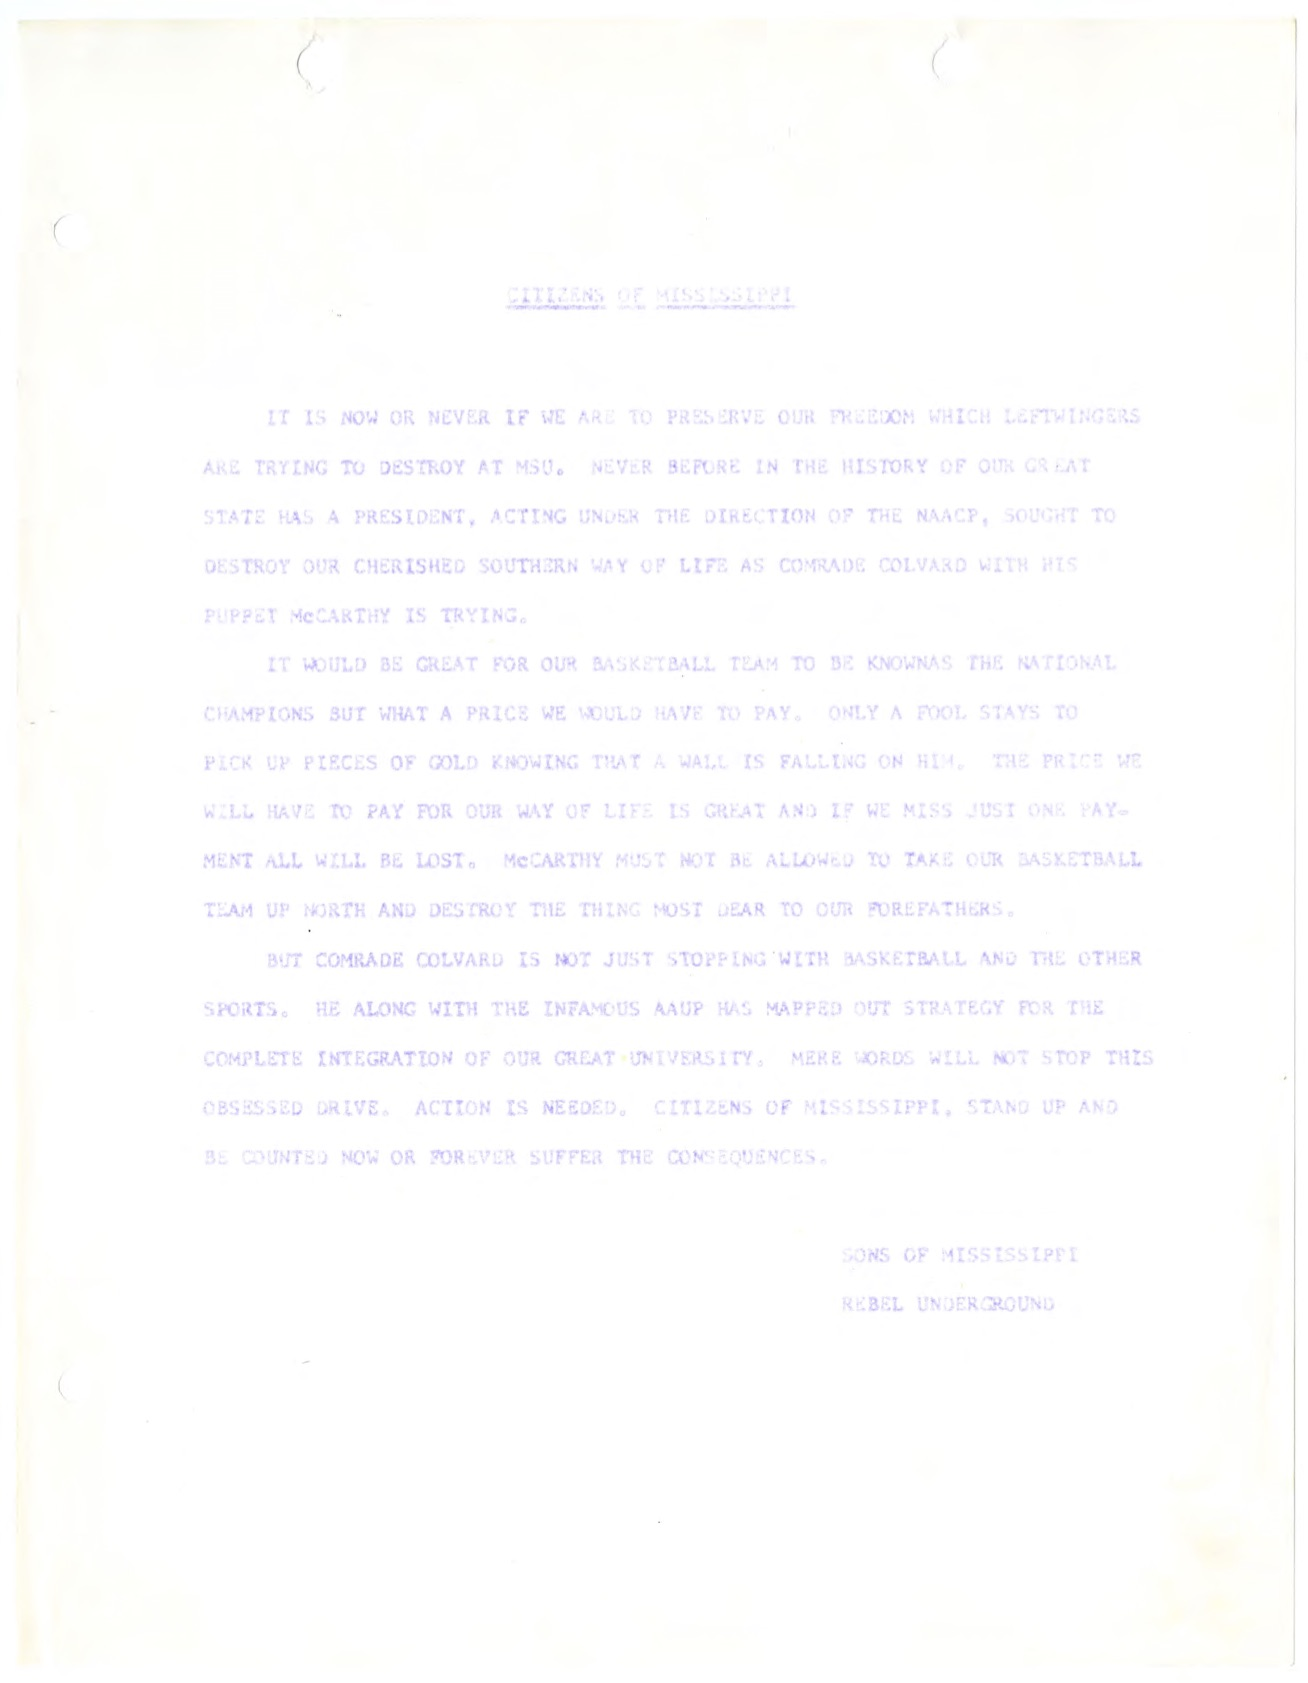 Essay Writing On Newspaper Note From The Rebel Underground Urging Mississippians To Stand Against  President Colvard And Coach English Essay Introduction Example also Student Life Essay In English The Msu Story  A Shaky Truce  Starkville Civil Rights  The Importance Of English Essay